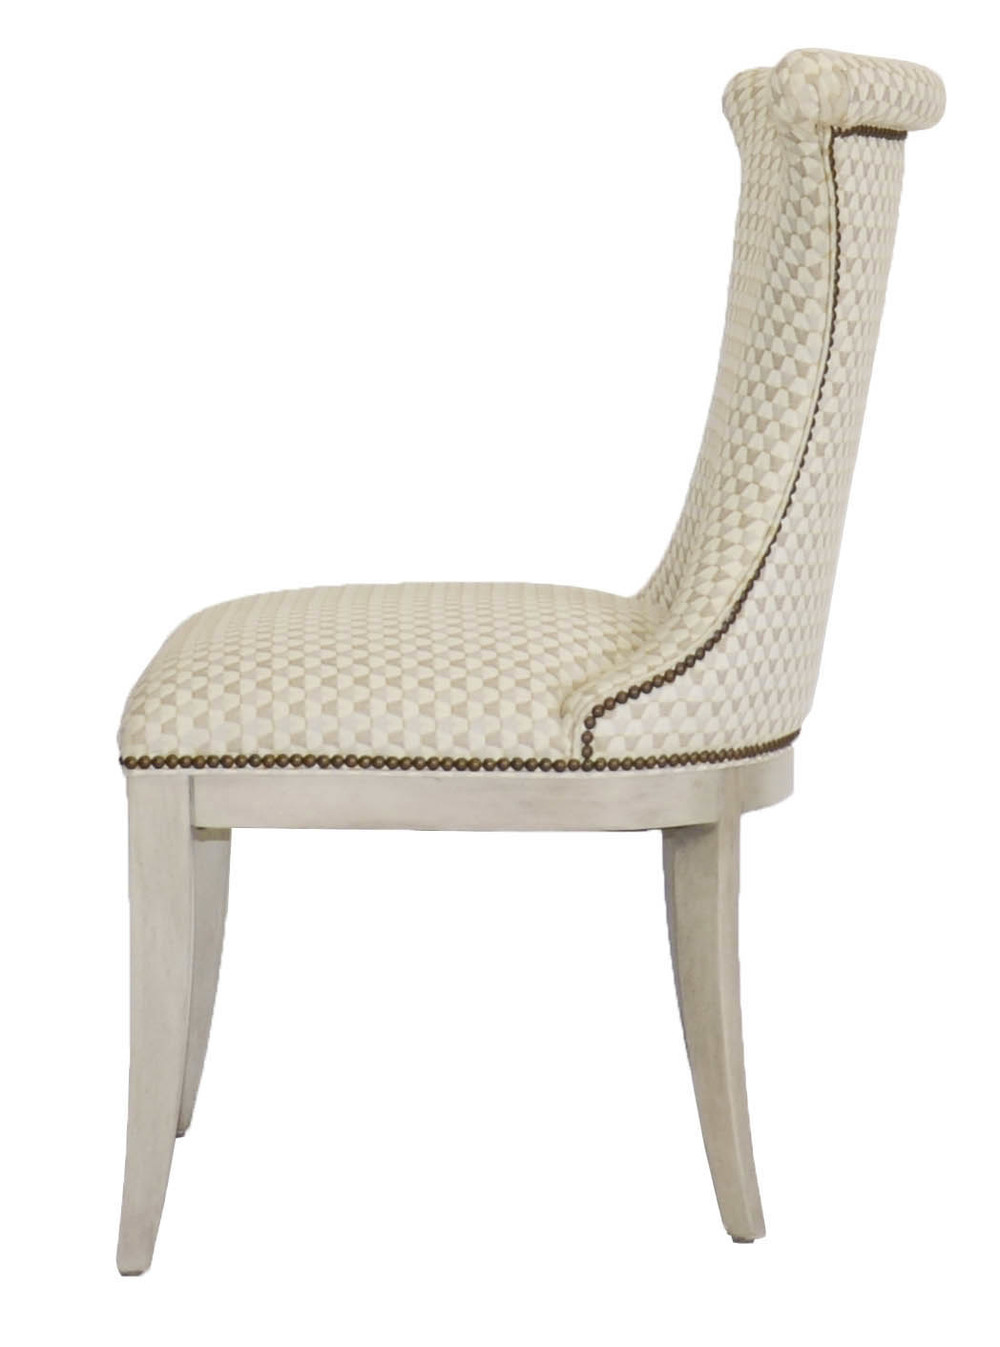 VANGUARD FURNITURE COMPANY - Eve Side Chair